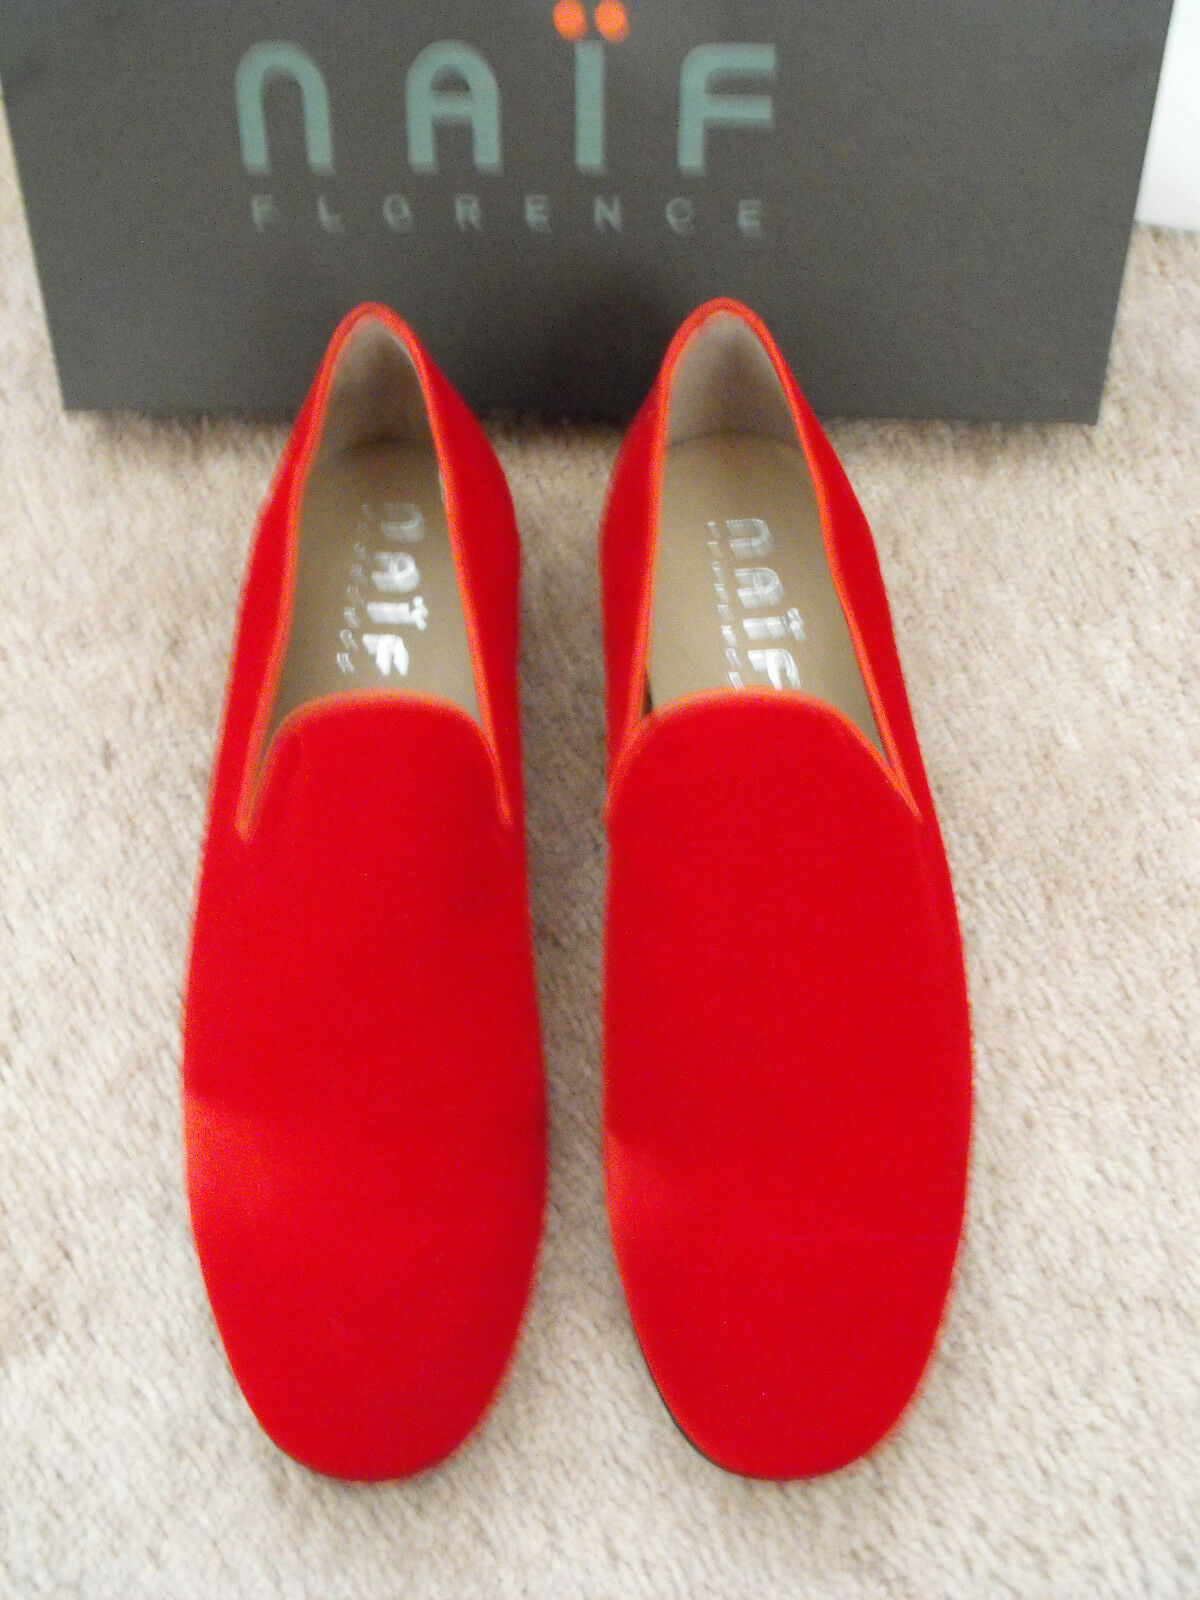 495 NEW BNIB NAIF ITALY rot Velvet Loafers Größe EU 45 UK 11 US 12